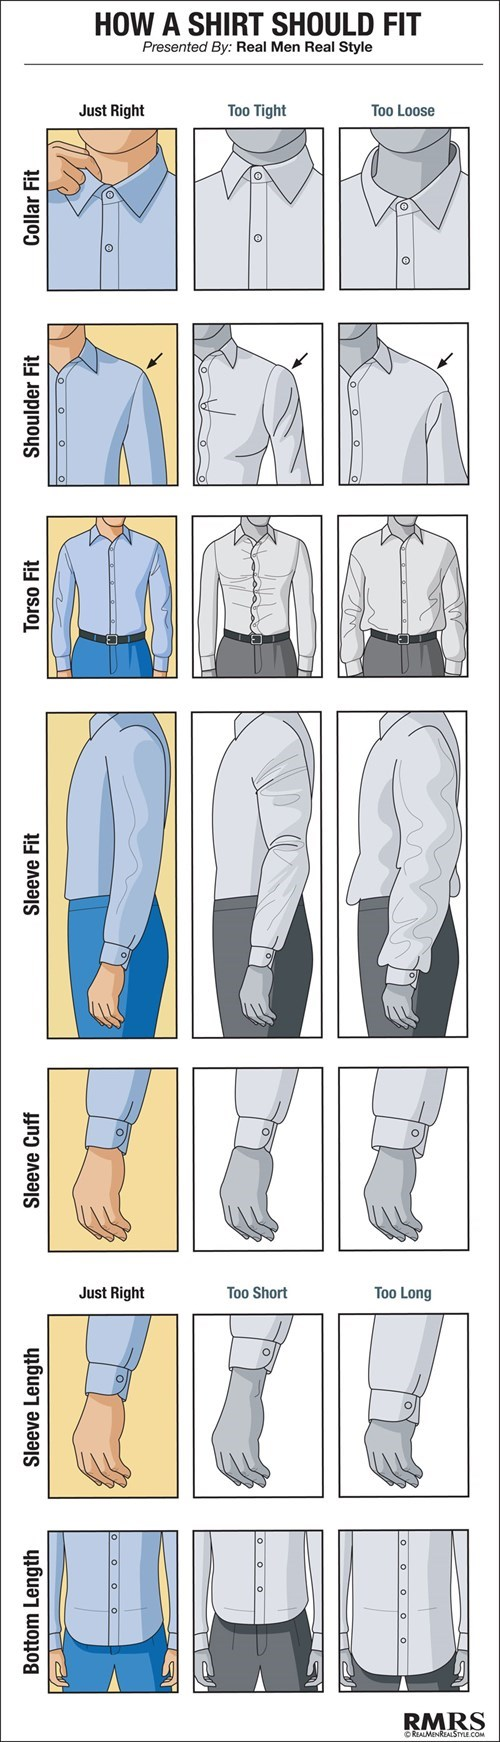 dress shirt,infographic,fit,poorly dressed